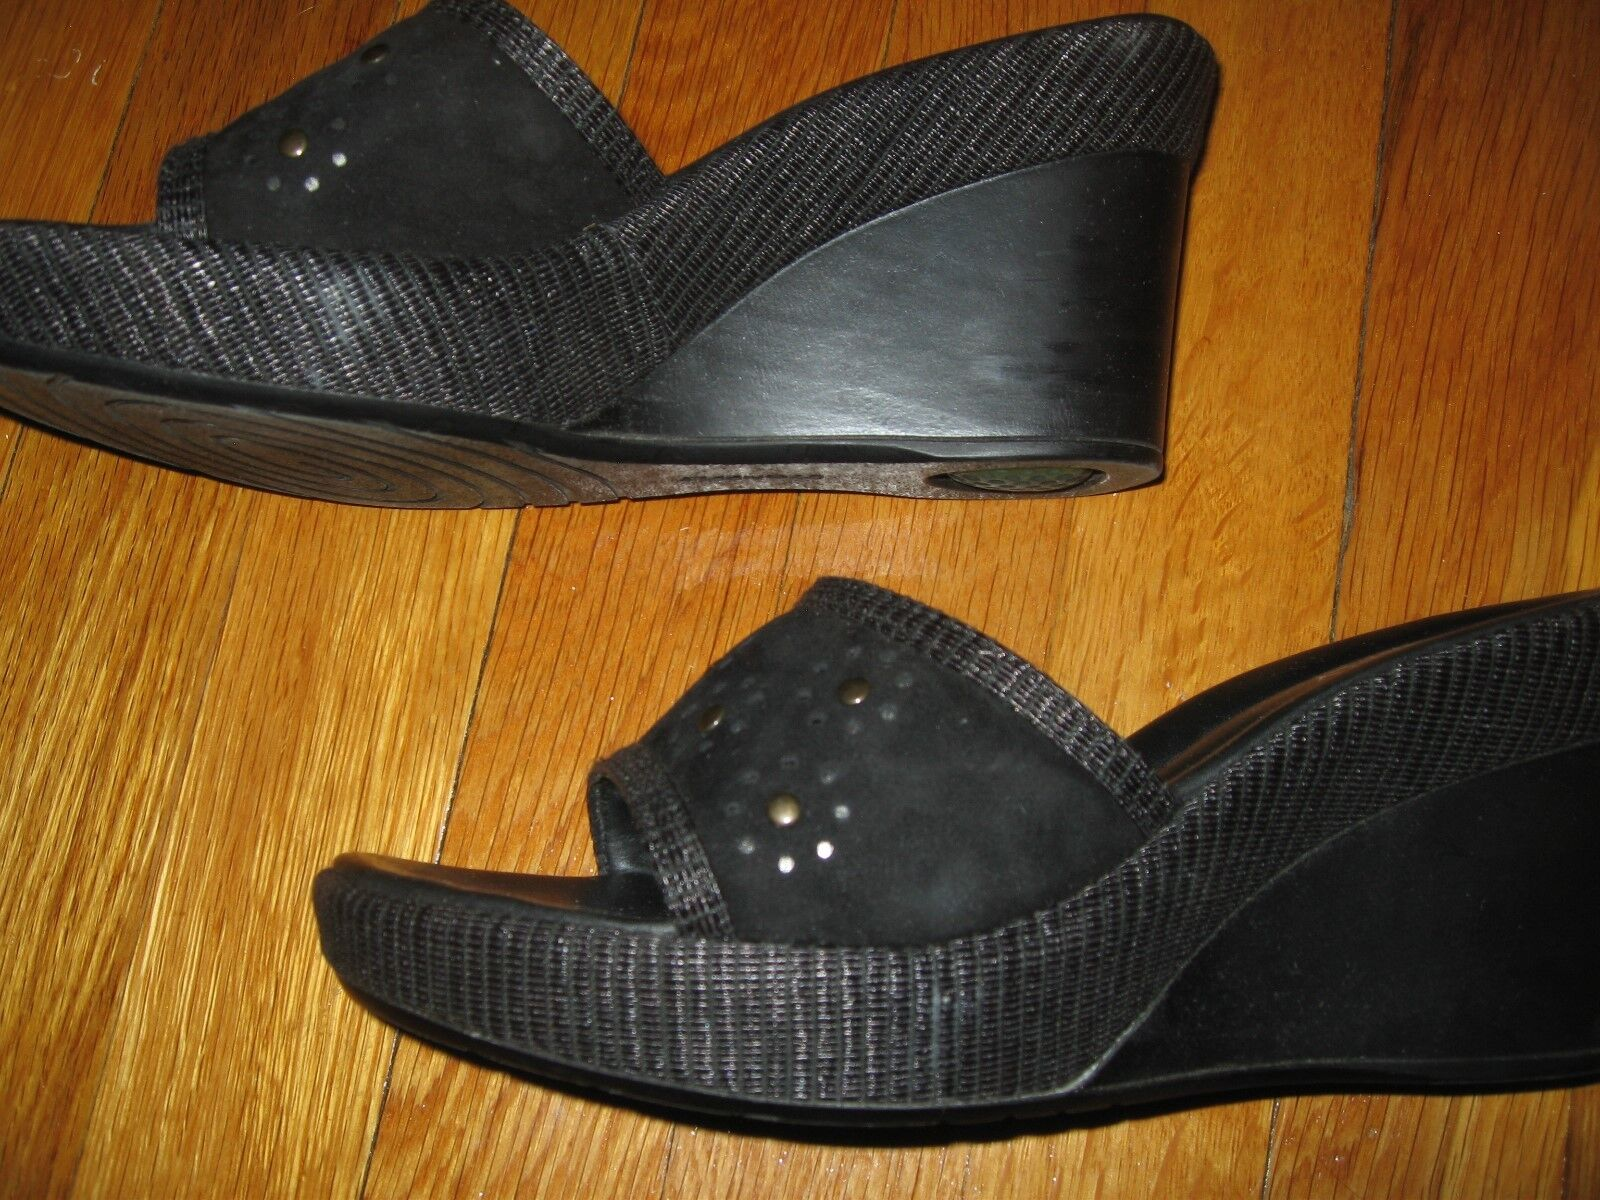 Stonefly Comfort Black Suede Leather Slide Sandals SZ EUR 39 US WOMEN'S 8 MEDIUM